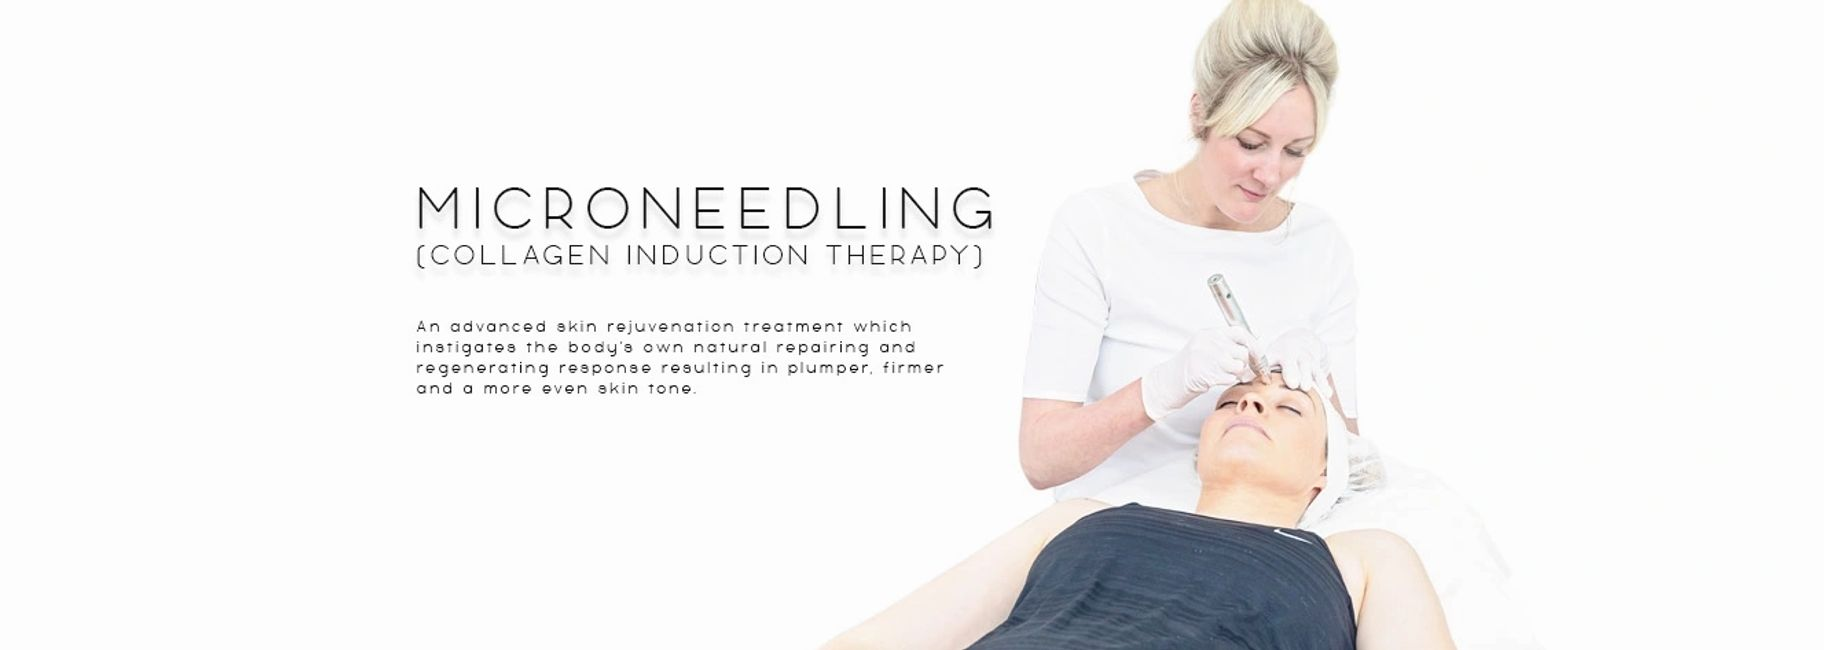 Microneedling Carlisle - Collagen Induction Therapy